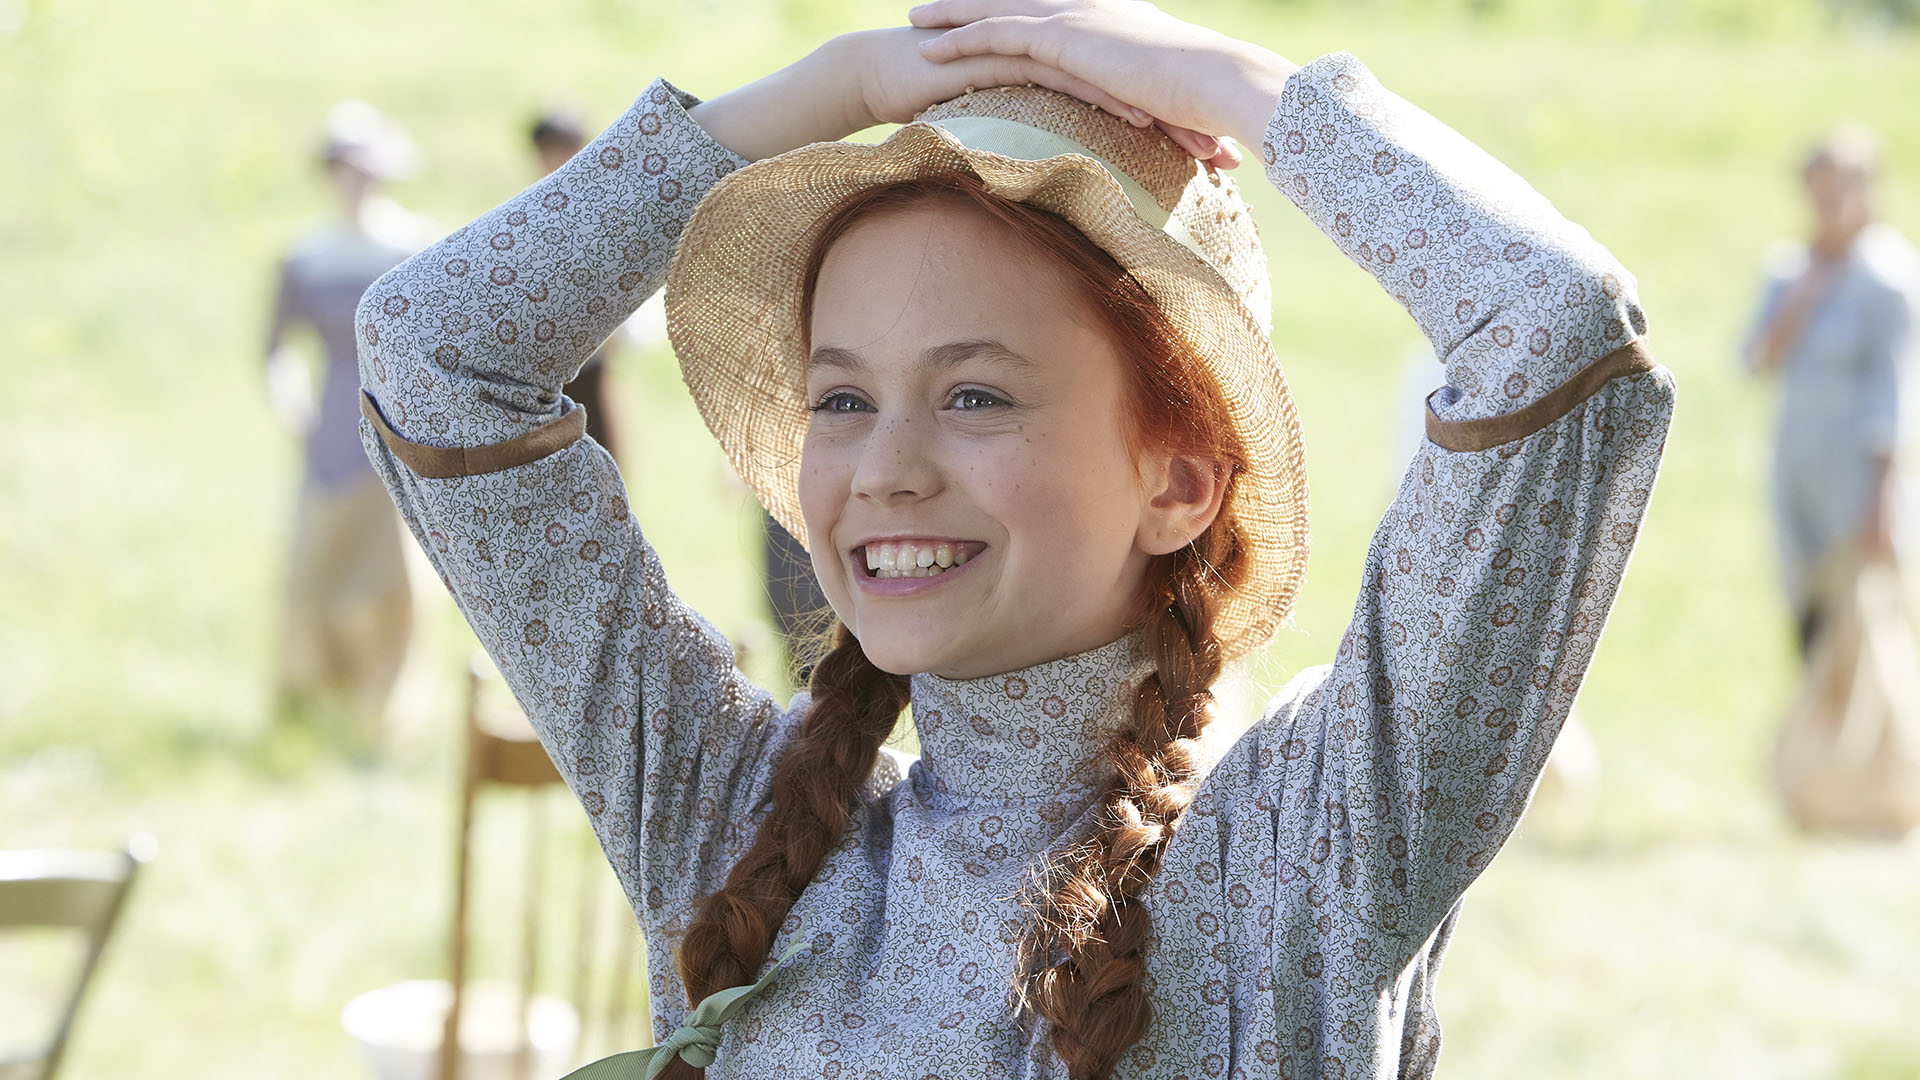 Why Anne of Green Gables is the hero we need right now